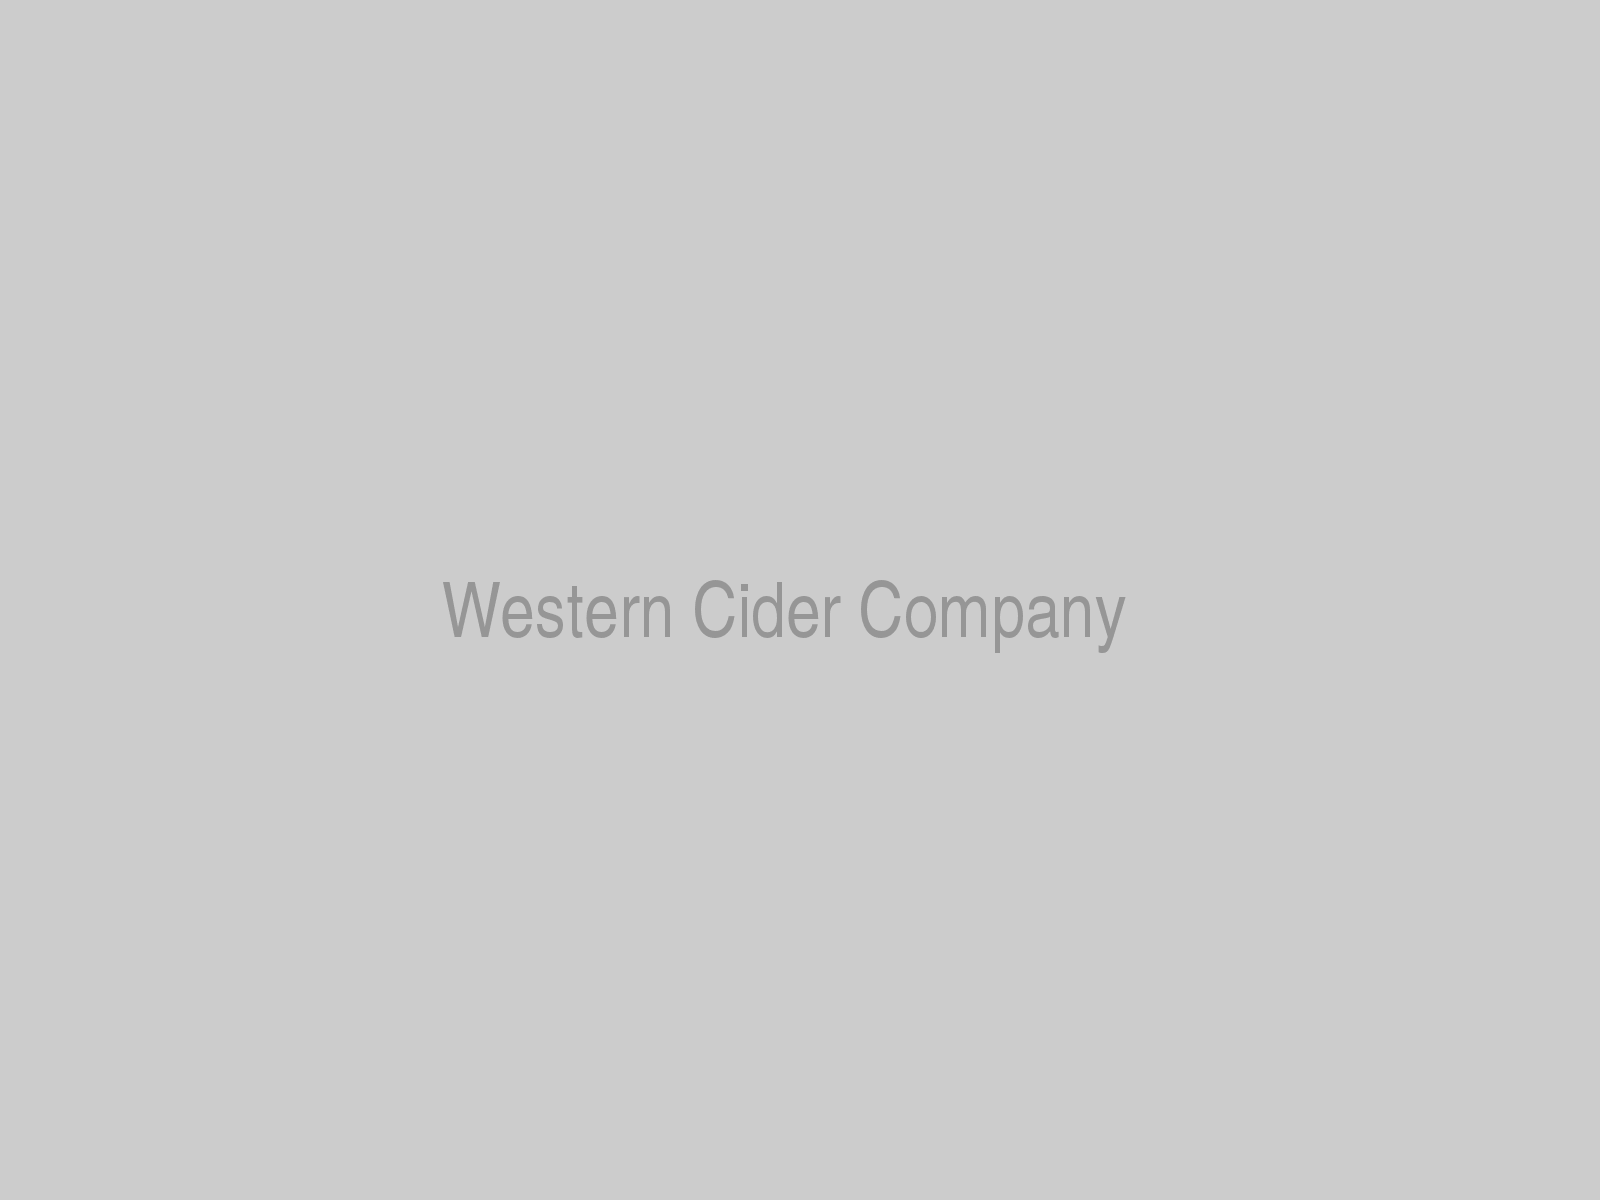 Western Cider Company